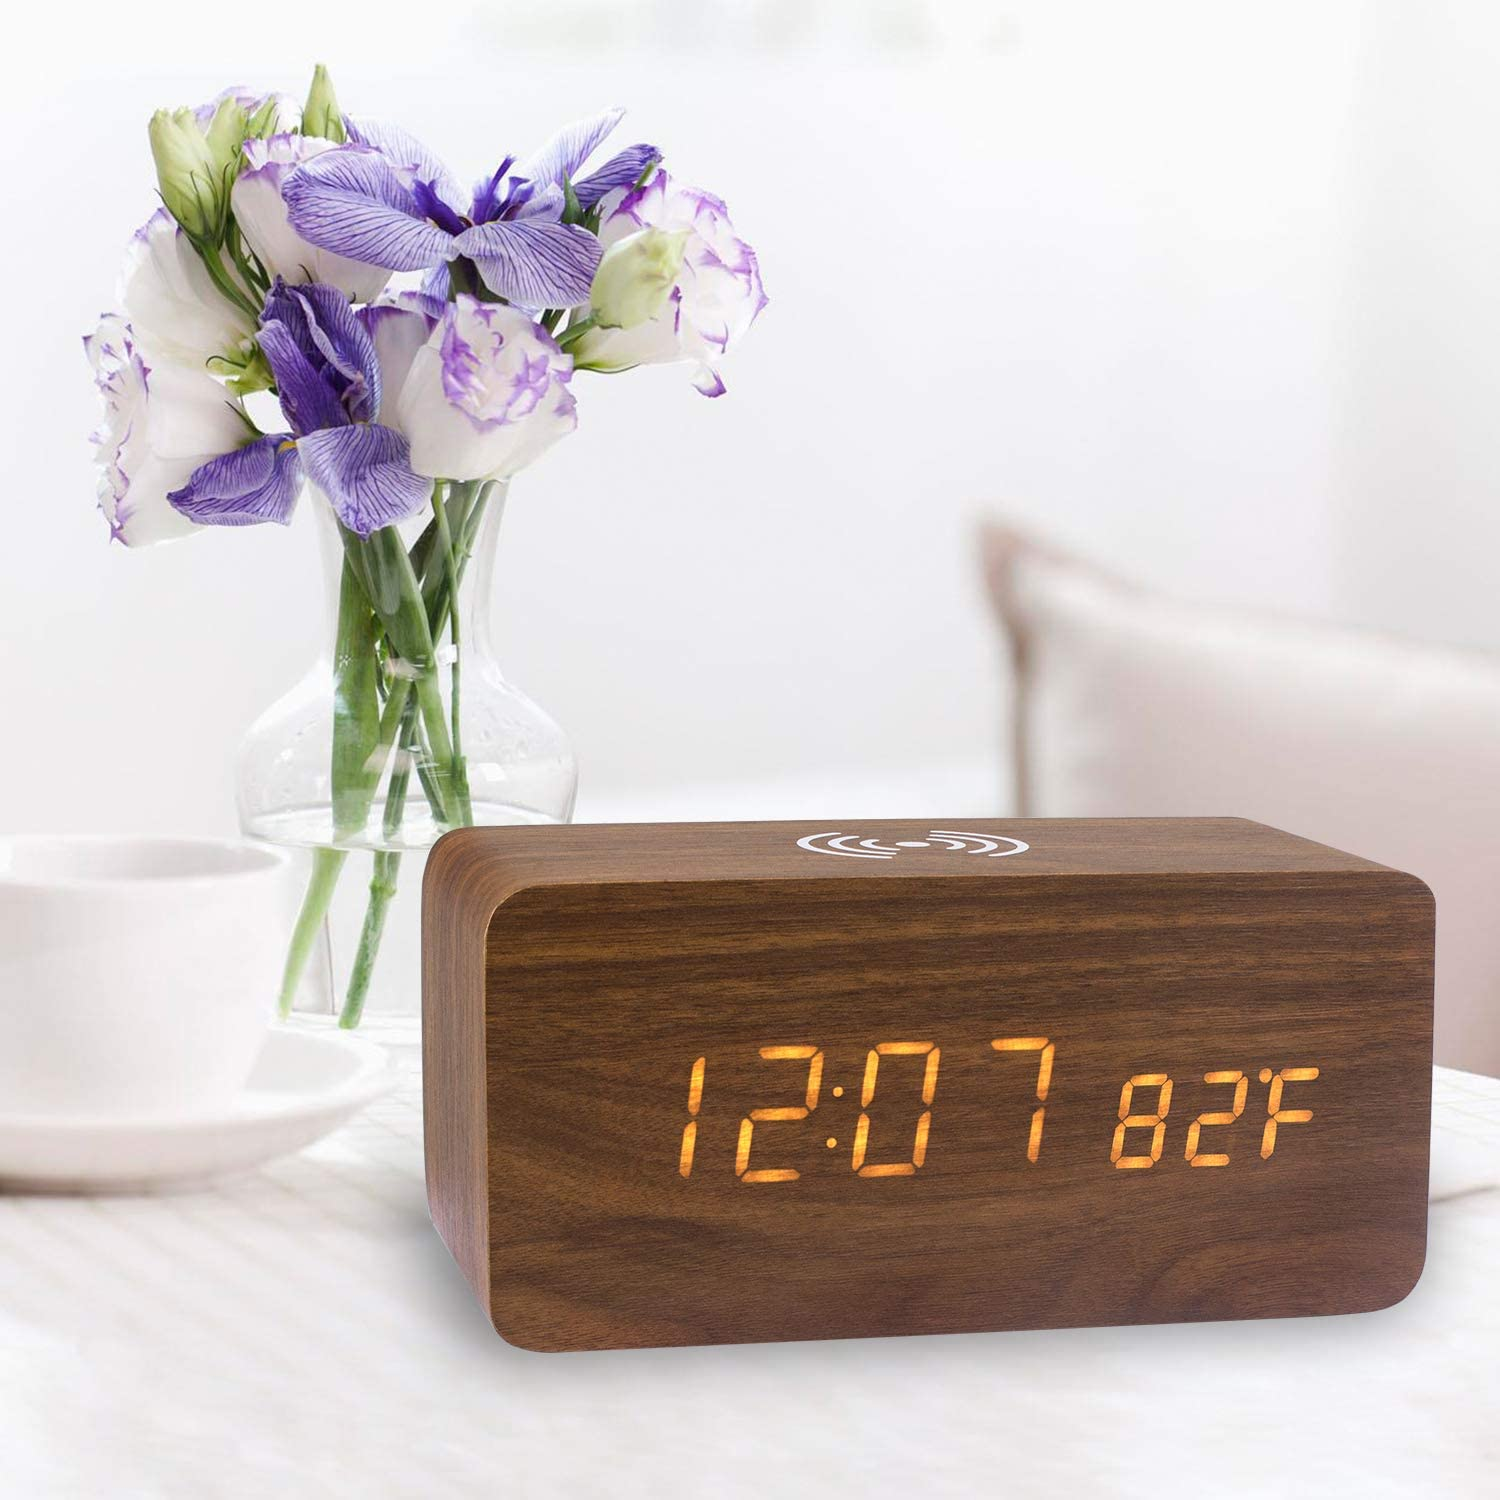 TechKen Wooden Alarm Clock with Qi Wireless Charging Pad, Wood LED Digital Bedroom Office Home Clock Time Date Temperature Display Wireless Charger